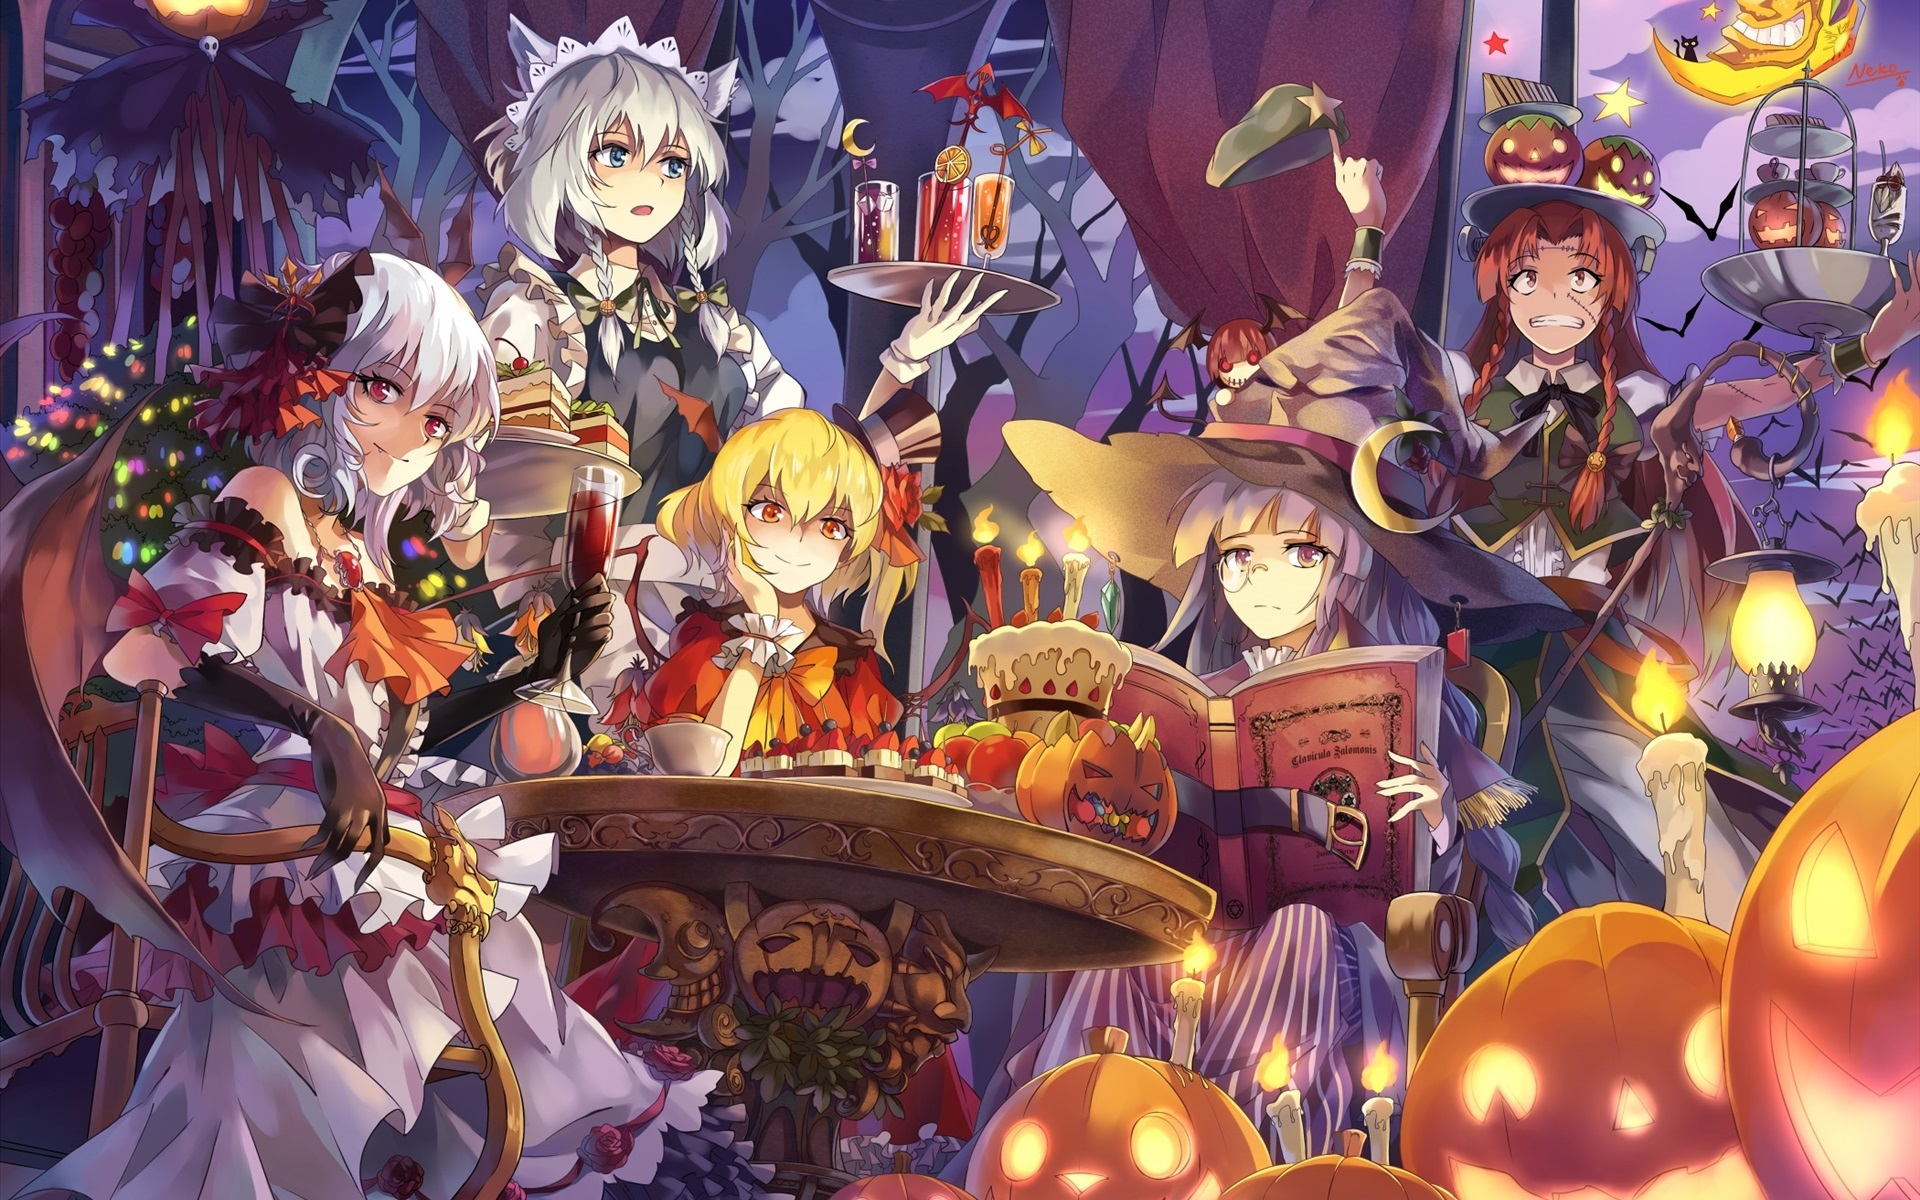 wallpaper beautiful anime girls, halloween 1920x1200 hd picture, image